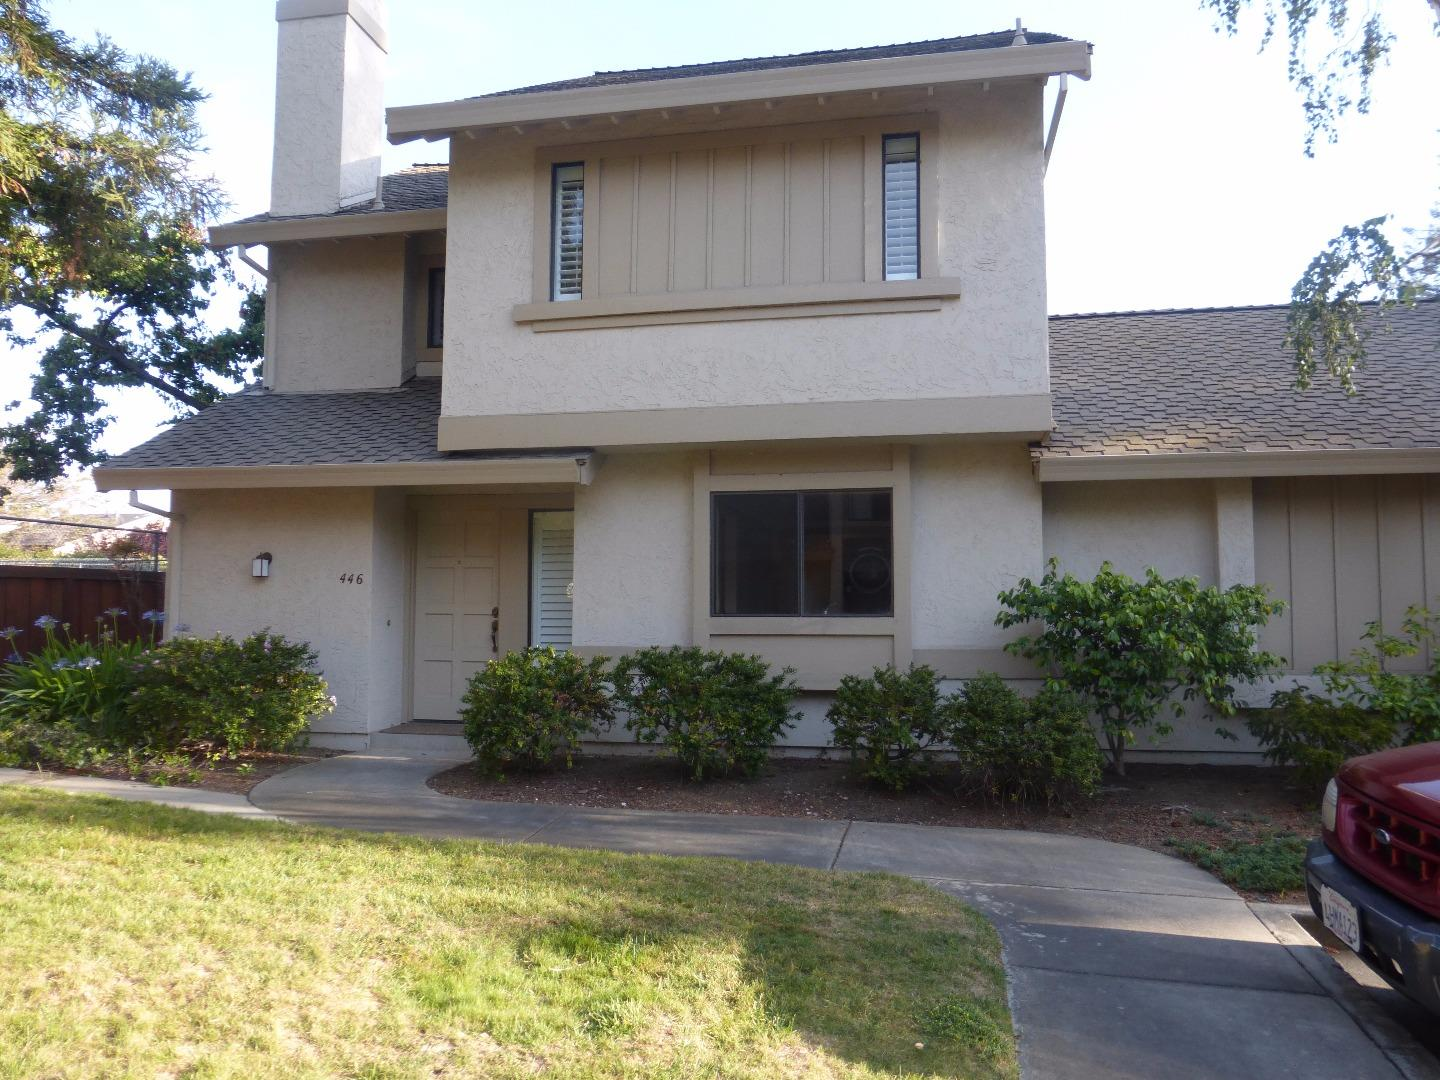 Townhouse for Rent at 446 Hogarth Terrace Sunnyvale, California 94087 United States